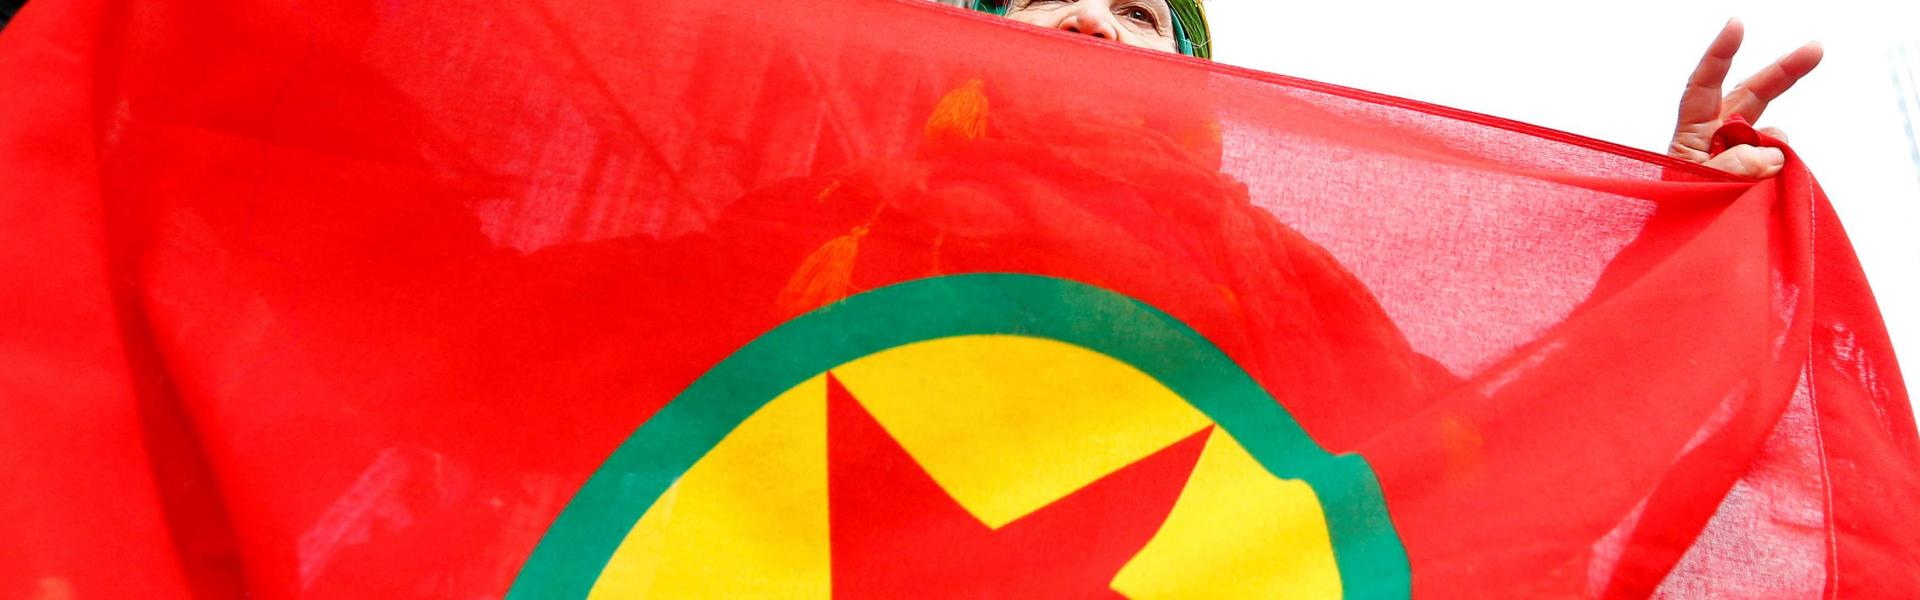 A woman holds a flag of the PKK (Kurdistan Workers' Party) during a demonstration against Turkish President Tayyip Erdogan in central Brussels, Belgium, November 17, 2016. REUTERS/Yves Herman